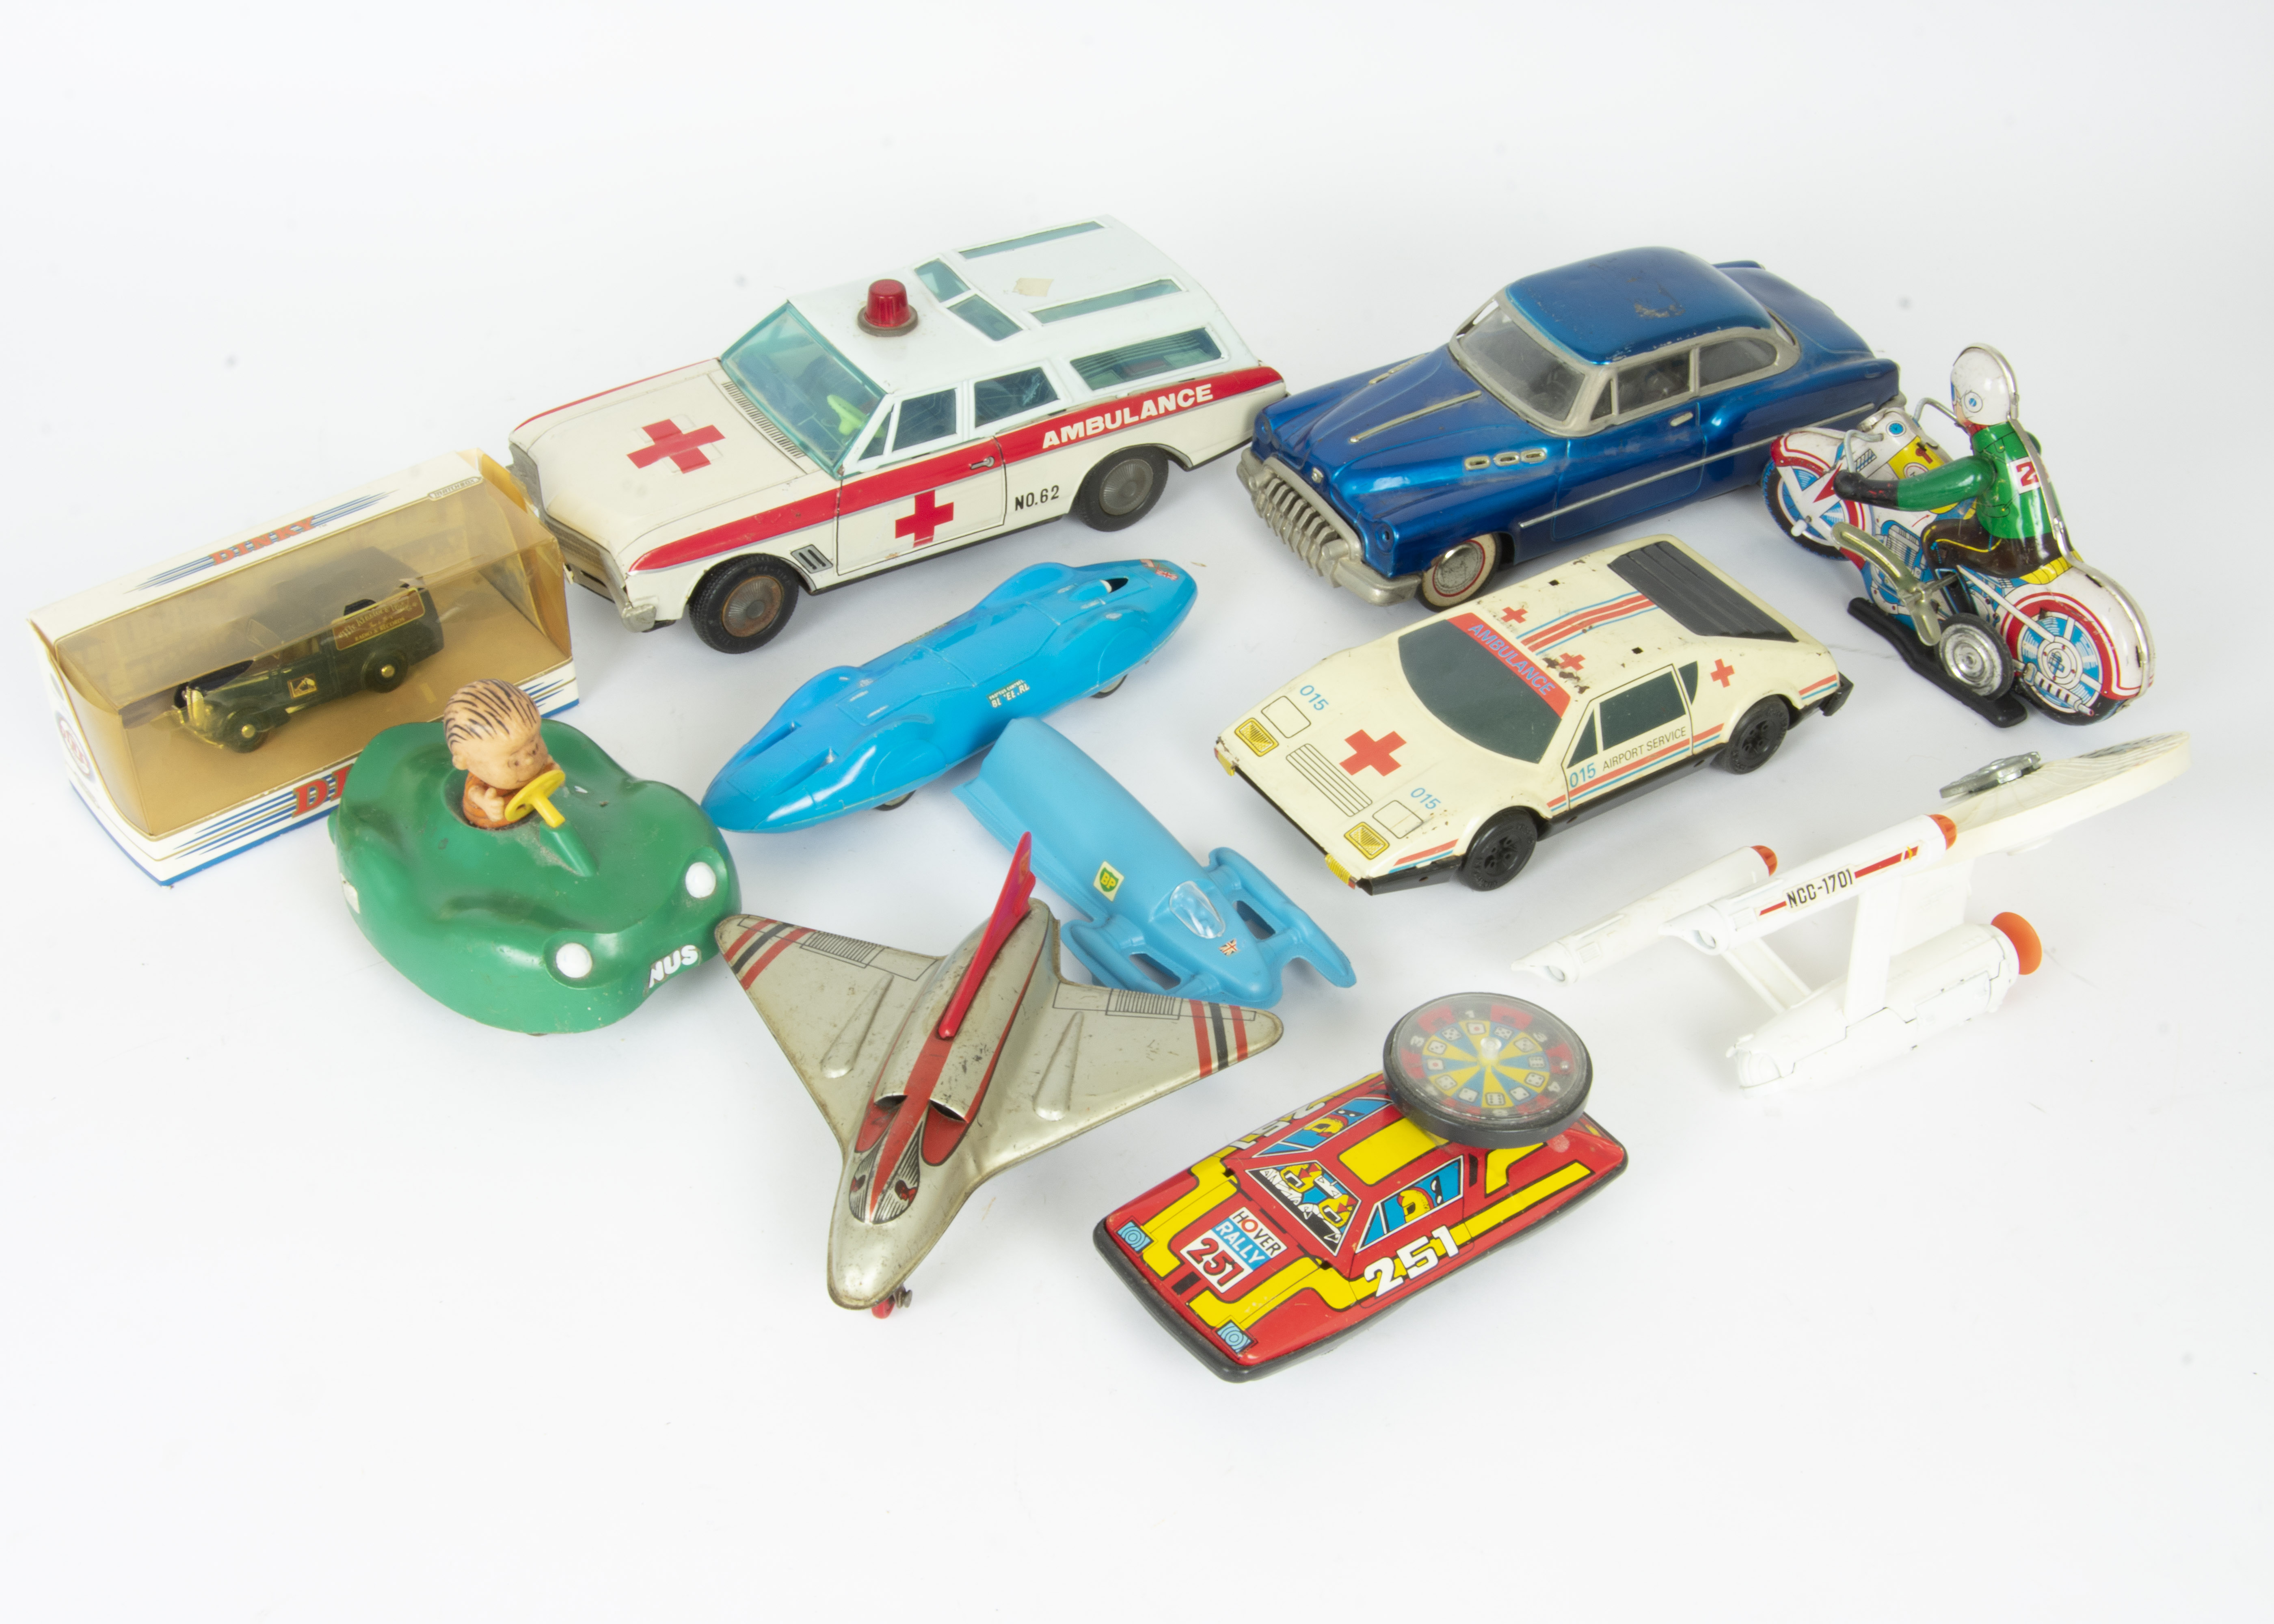 Lot 220 - Jetex Bluebird various Tin Cars and other Toys, Jetex BP Bluebird Set with speedboat and BP book